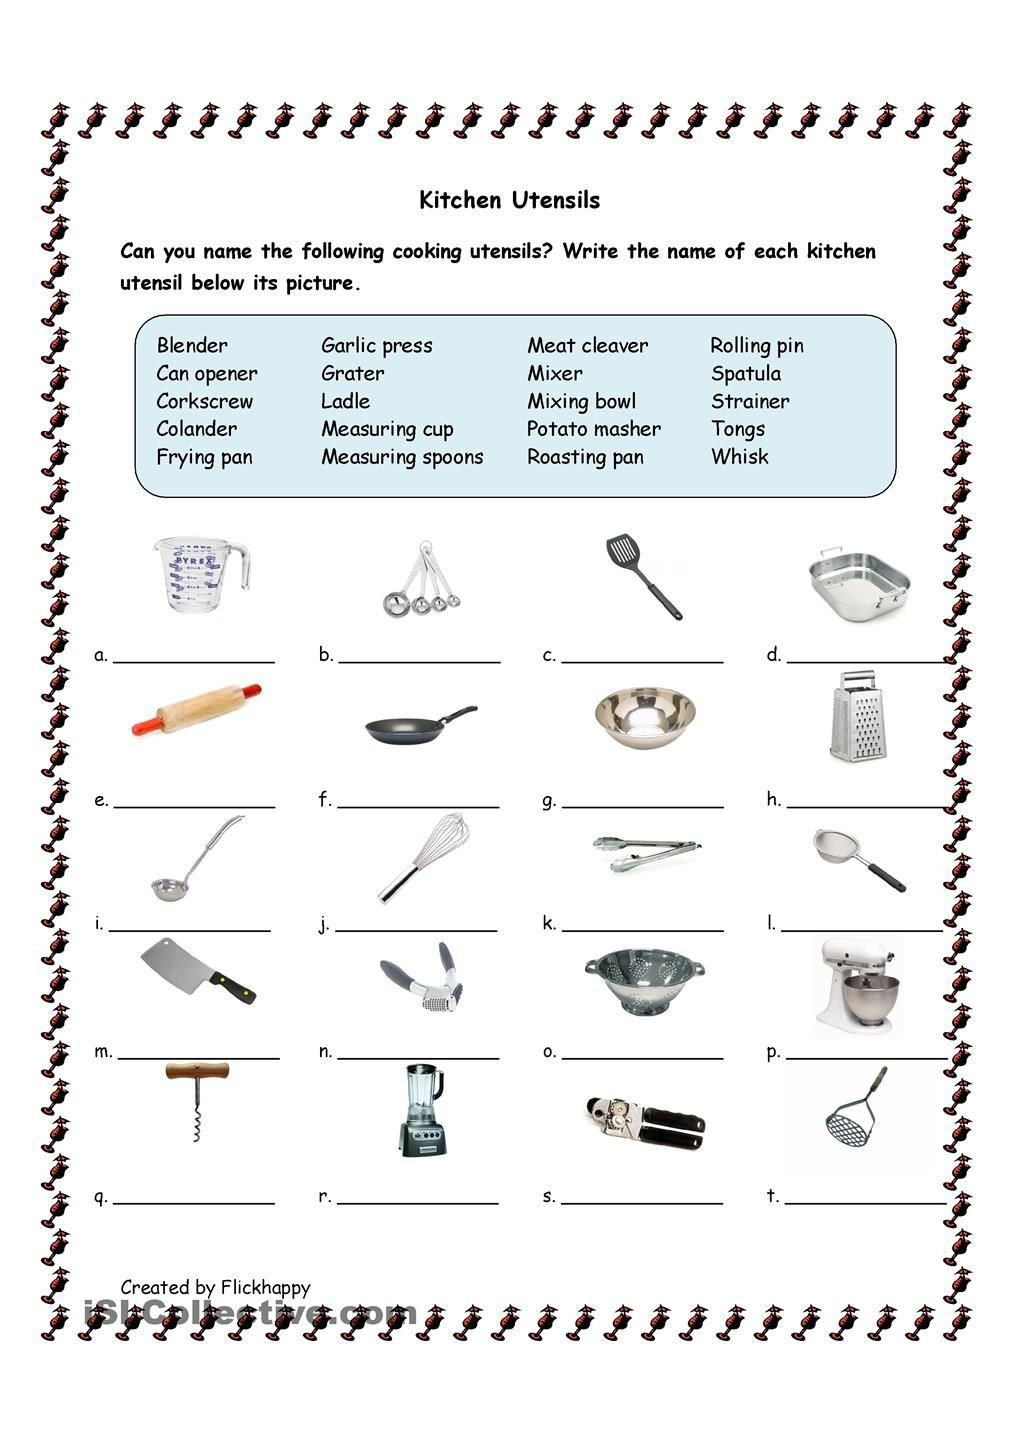 Home Economics Worksheets Kitchen Utensils with Life Skills Classroom Cooking